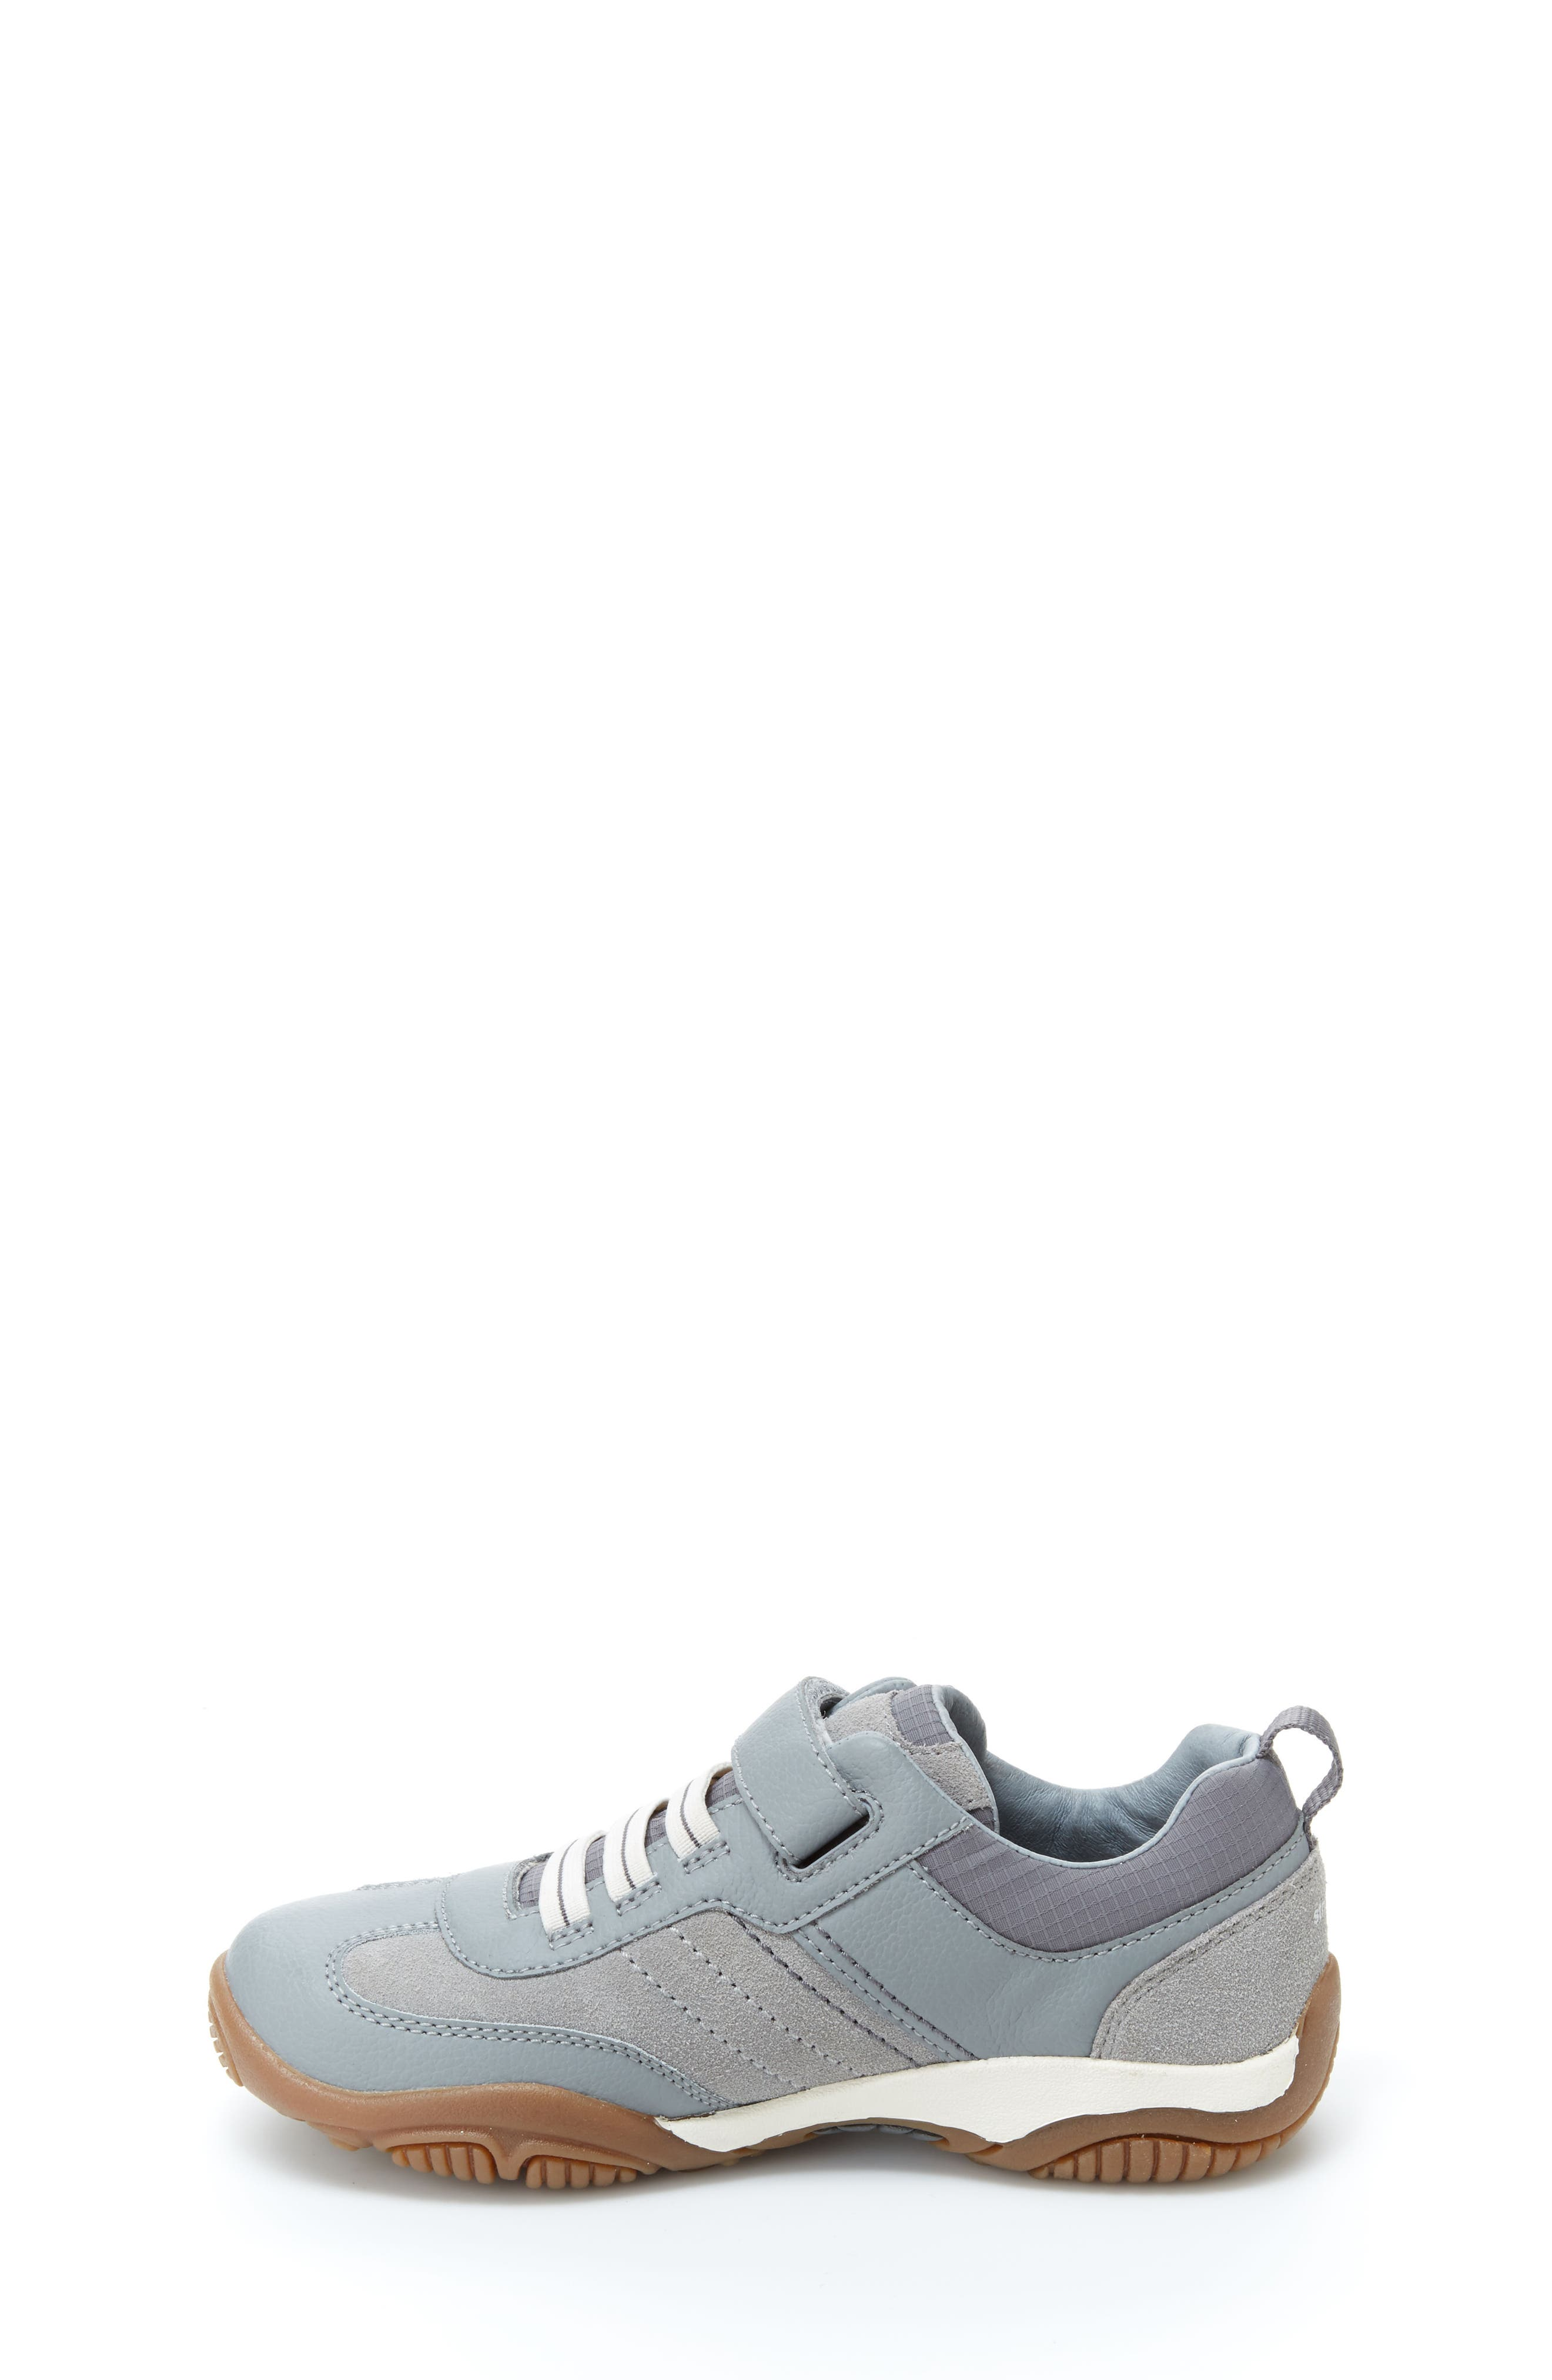 'SRT Prescott' Sneaker,                             Alternate thumbnail 7, color,                             GREY